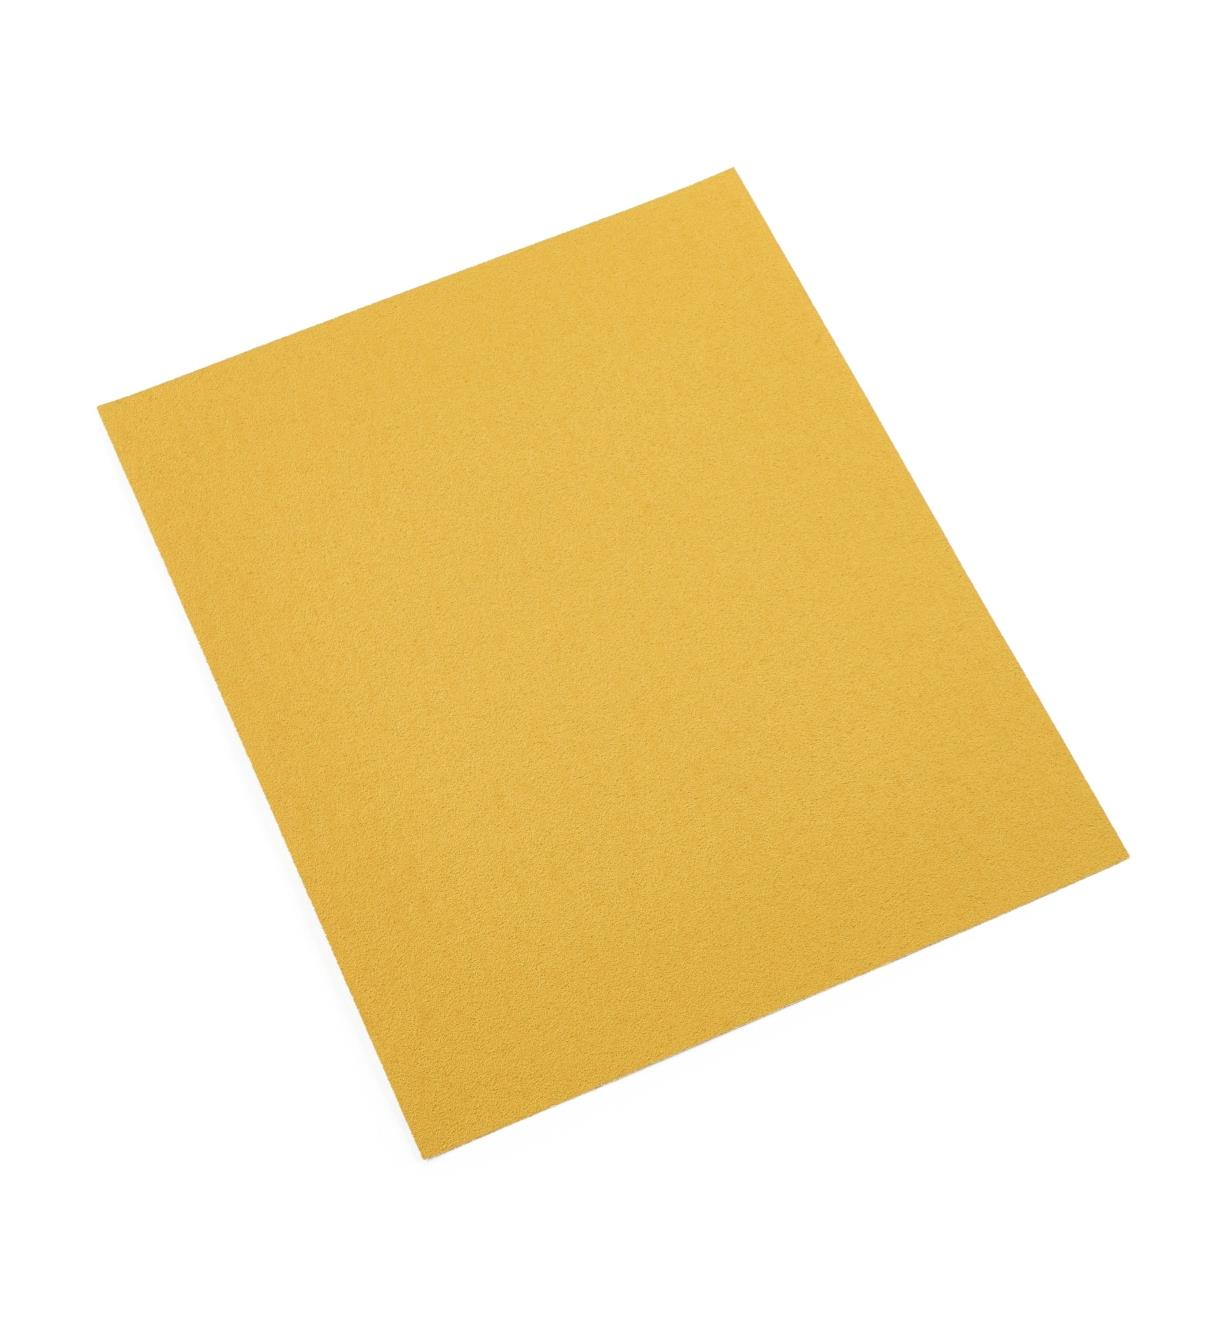 54K8201 - 3M No-Load Sandpaper, 80x